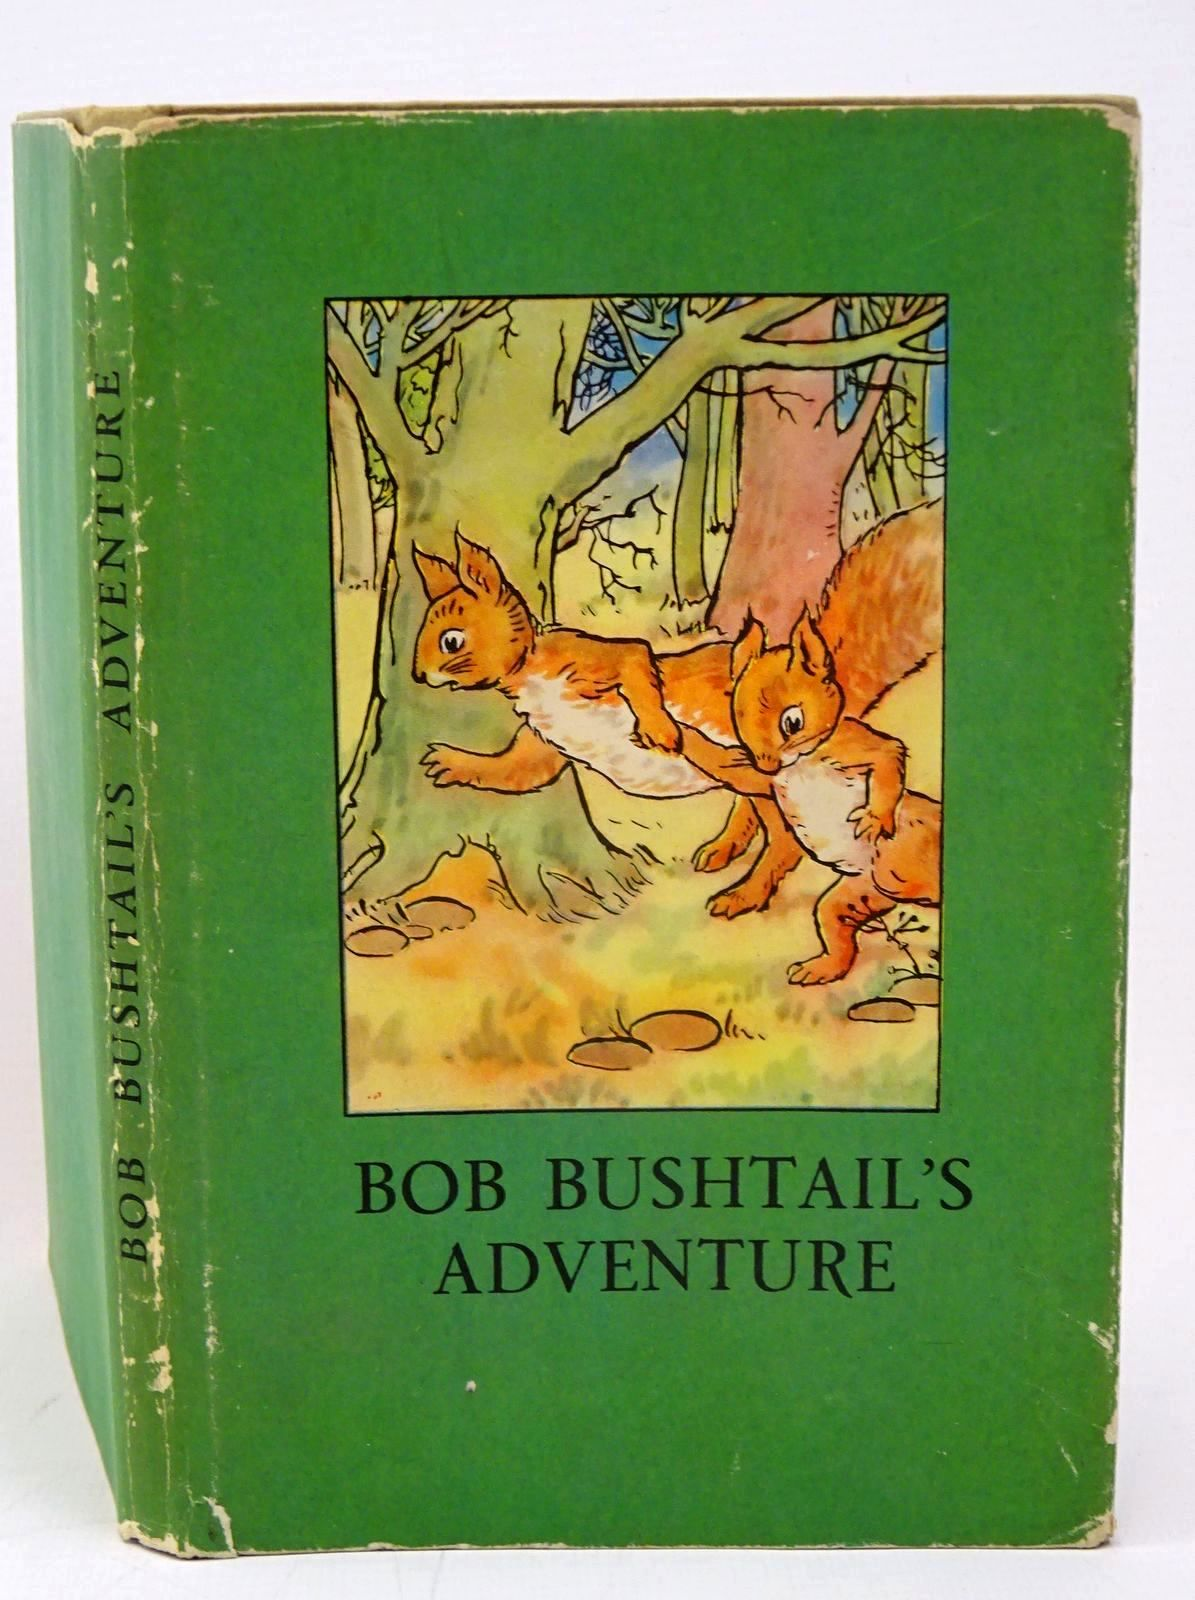 Photo of BOB BUSHTAIL'S ADVENTURE written by Macgregor, A.J. Perring, W. illustrated by Macgregor, A.J. published by Wills & Hepworth Ltd. (STOCK CODE: 1317769)  for sale by Stella & Rose's Books